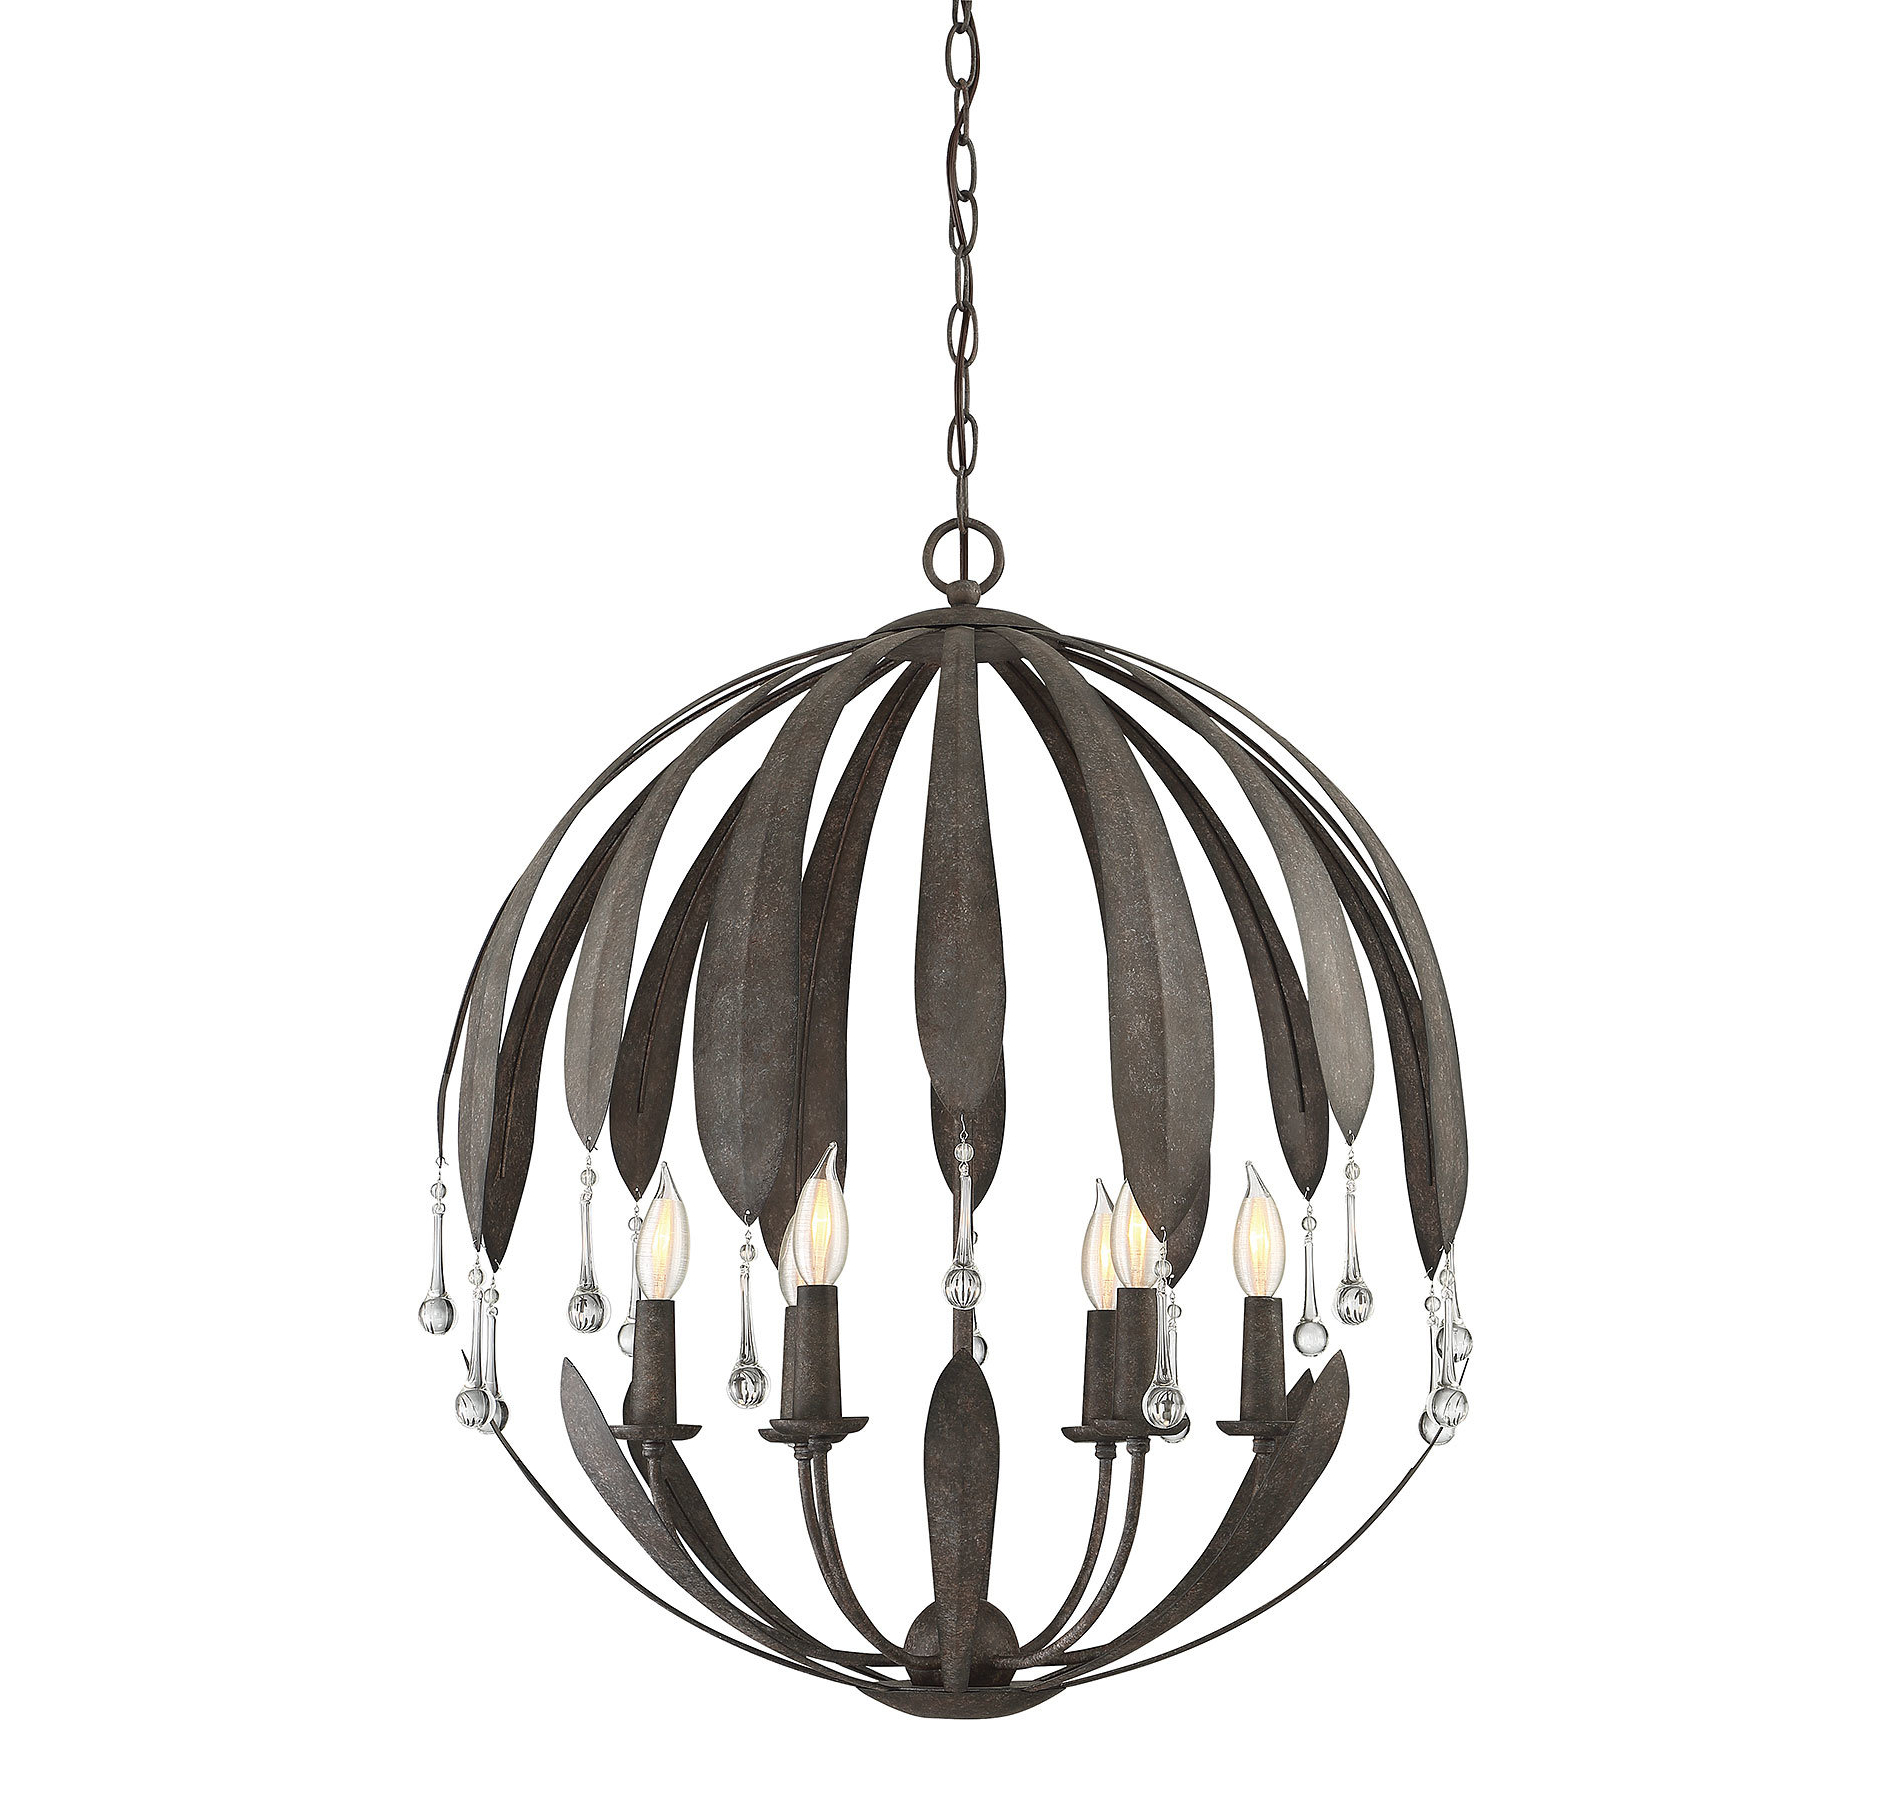 2020 Wyant 6 Light Chandelier Intended For Morganti 4 Light Chandeliers (View 2 of 20)